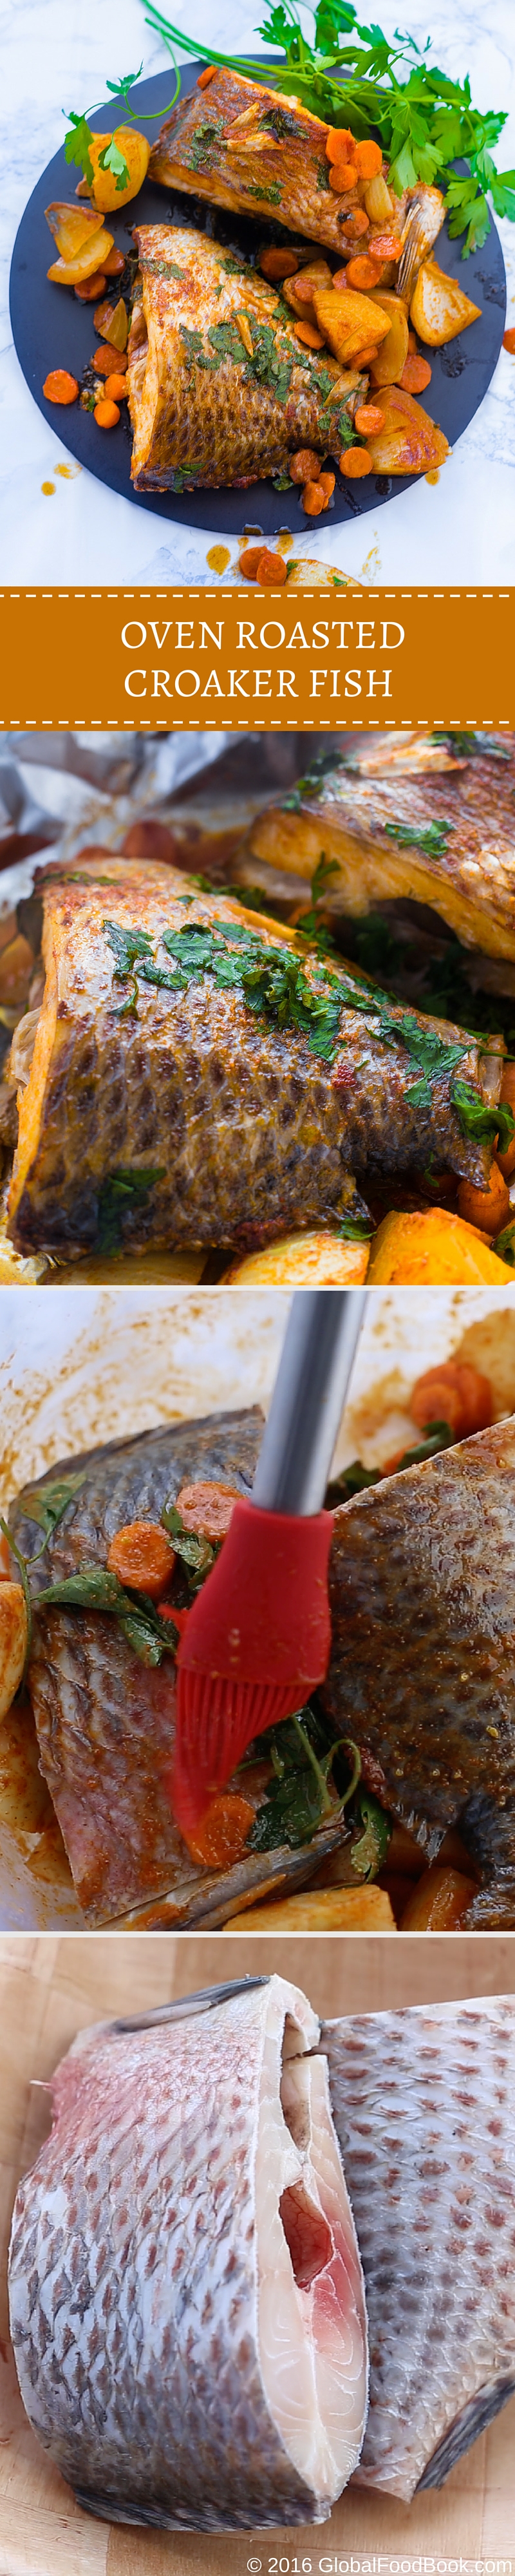 OVEN ROASTED CROAKER FISH (1)